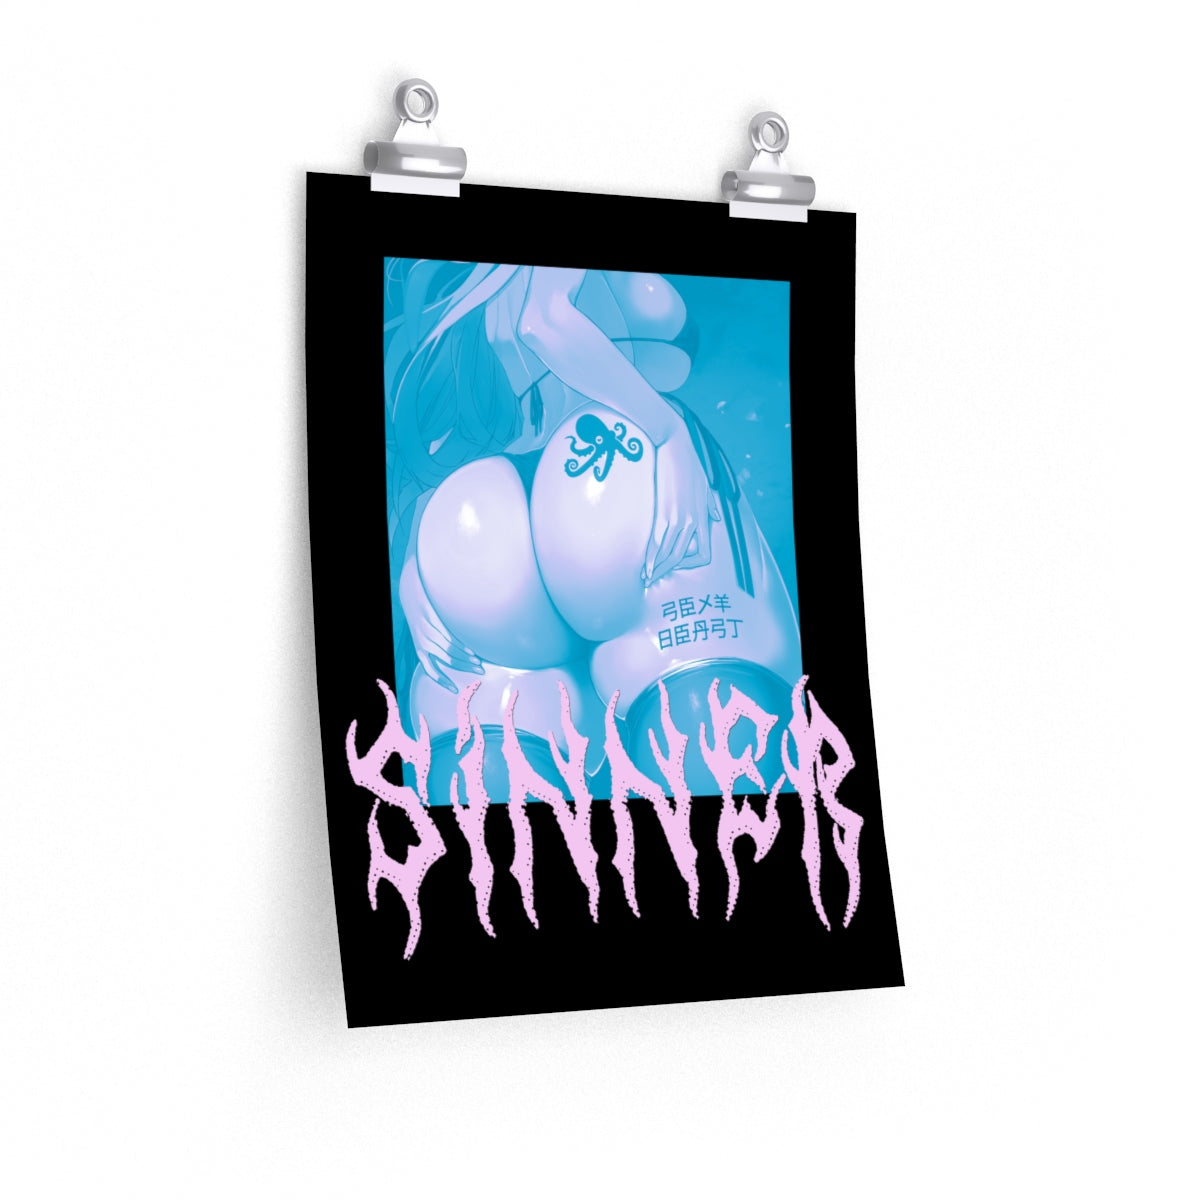 Sinners & Grinners – Posters